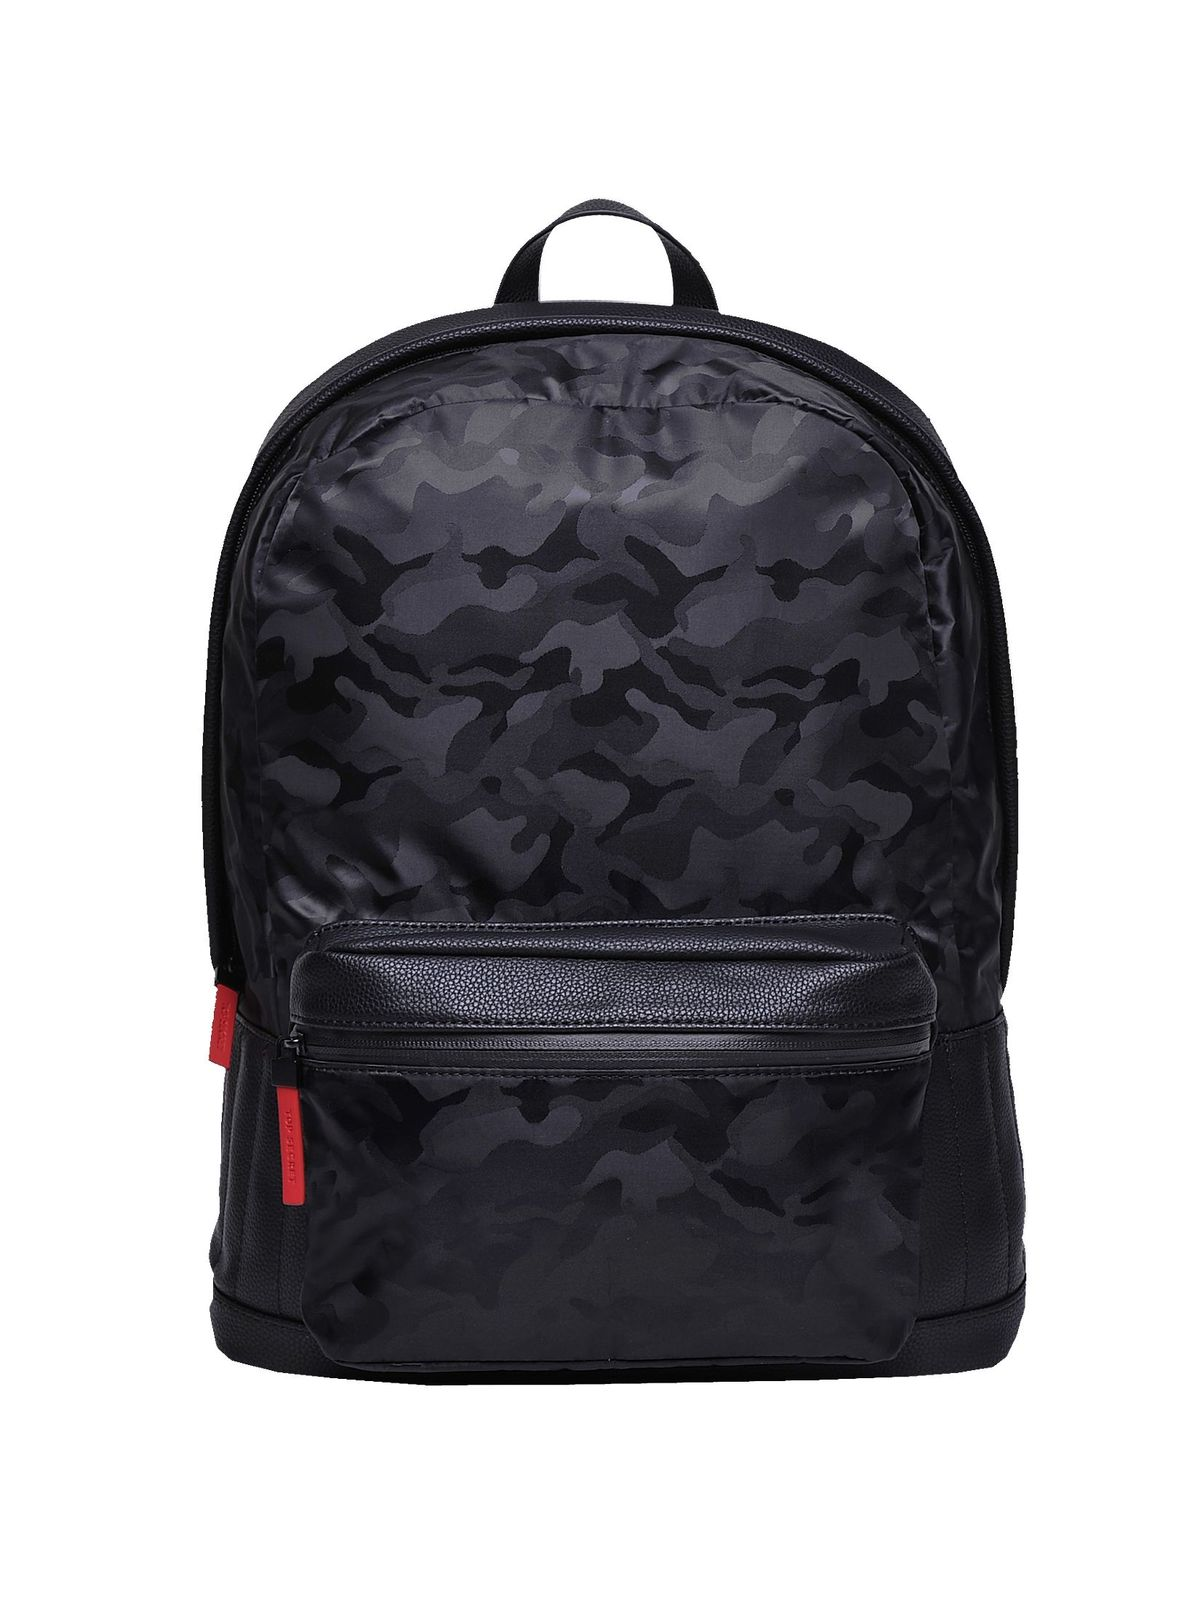 TOP SECRET ΜΑΥΡΟ BACKPACK ΜΕ CAMO PRINT